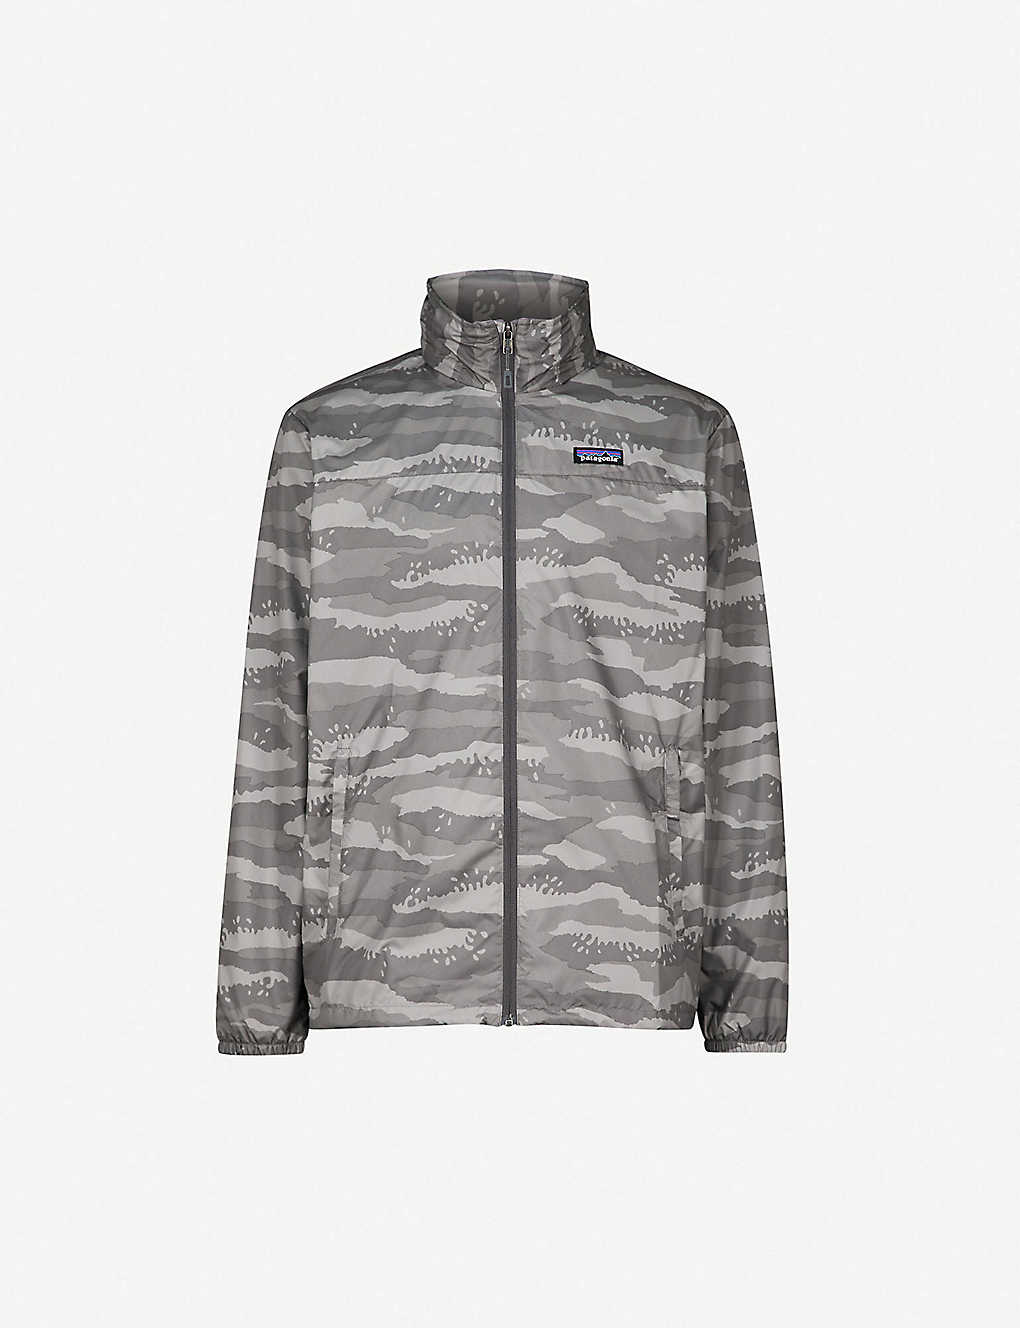 c5e1a779e041e PATAGONIA - Light & Variable camouflage-print shell jacket | Selfridges.com